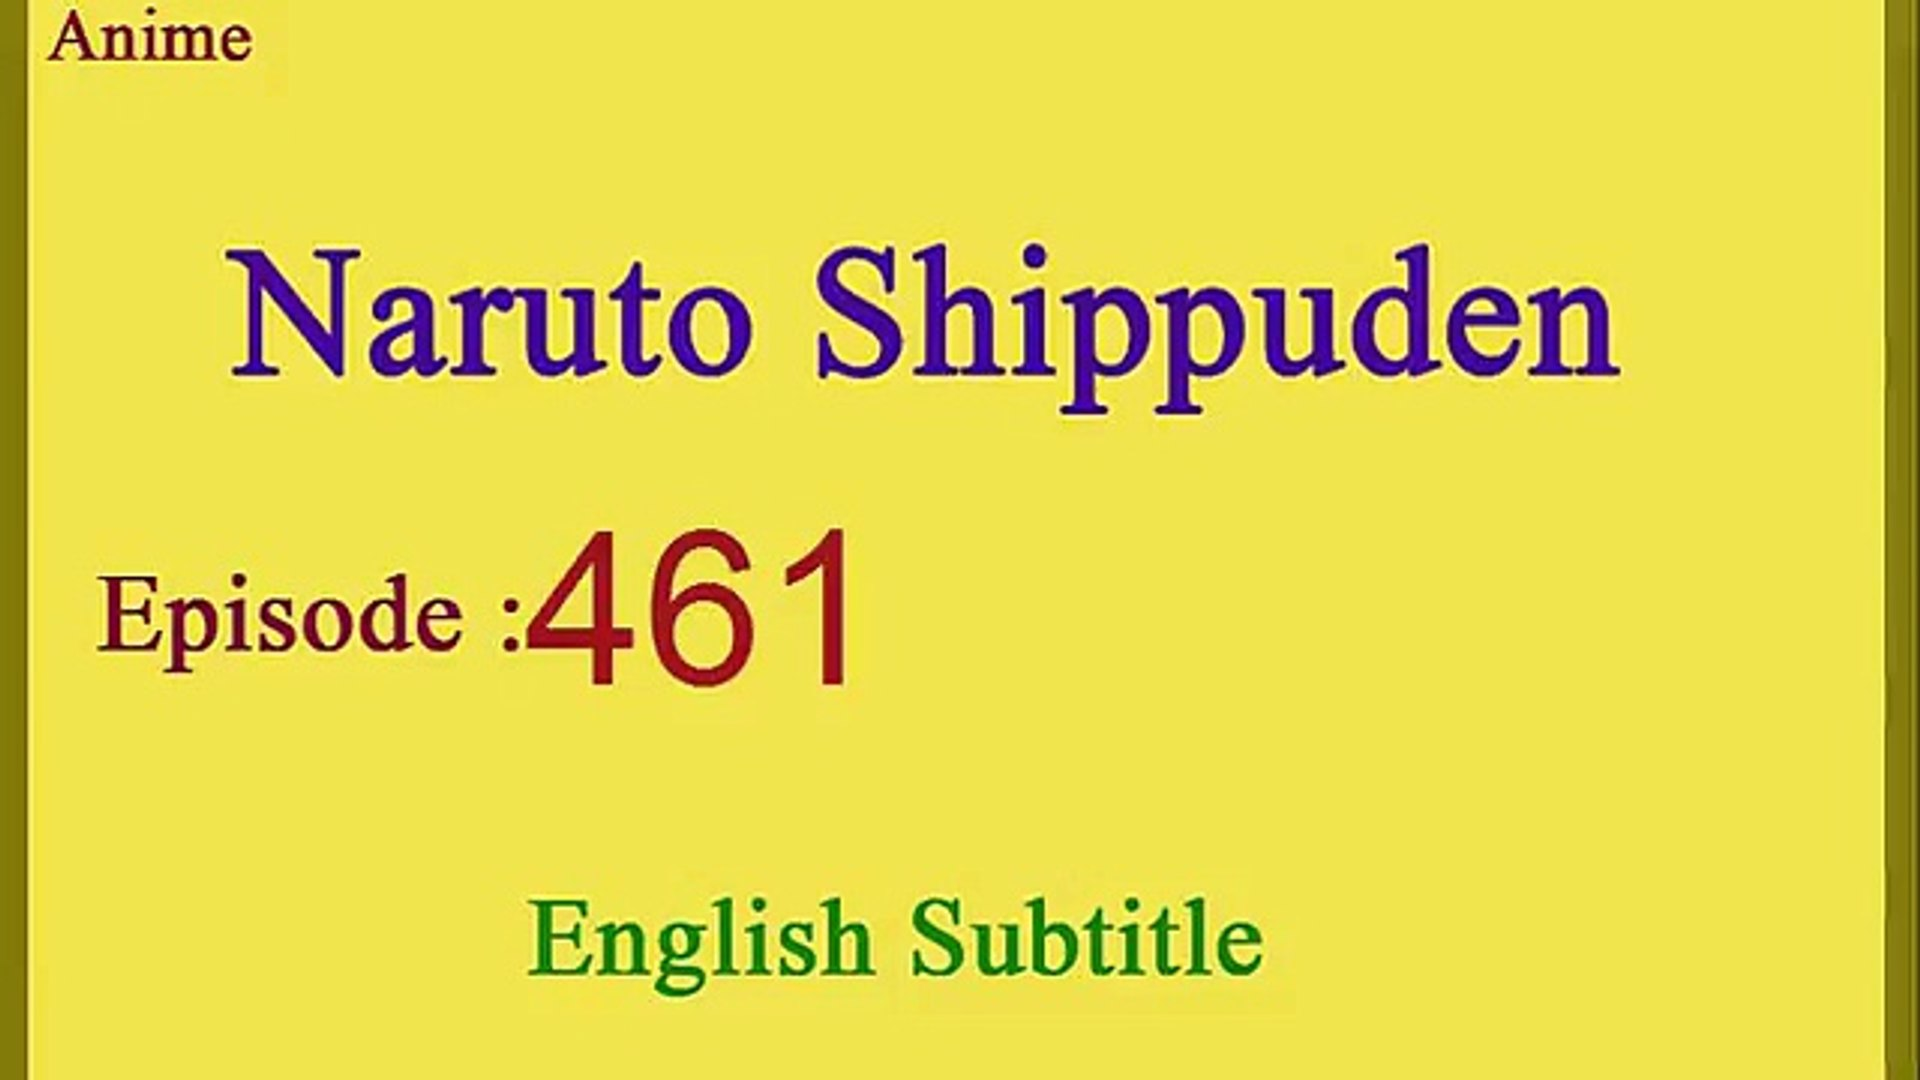 Naruto Shippuden English Subtitle Episode 461